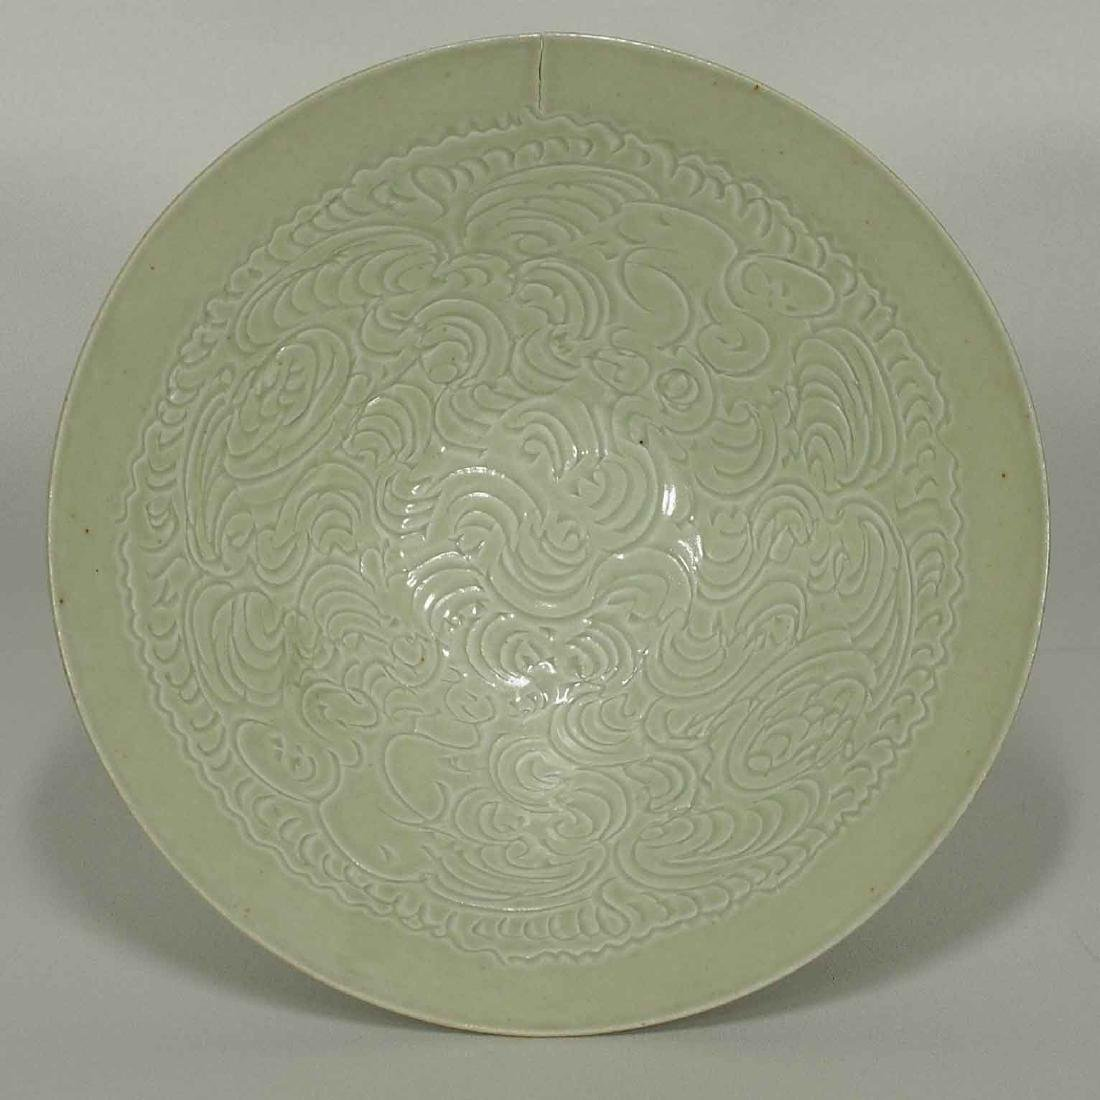 Qingbai Bowl with Incised Motif, Song Dynasty